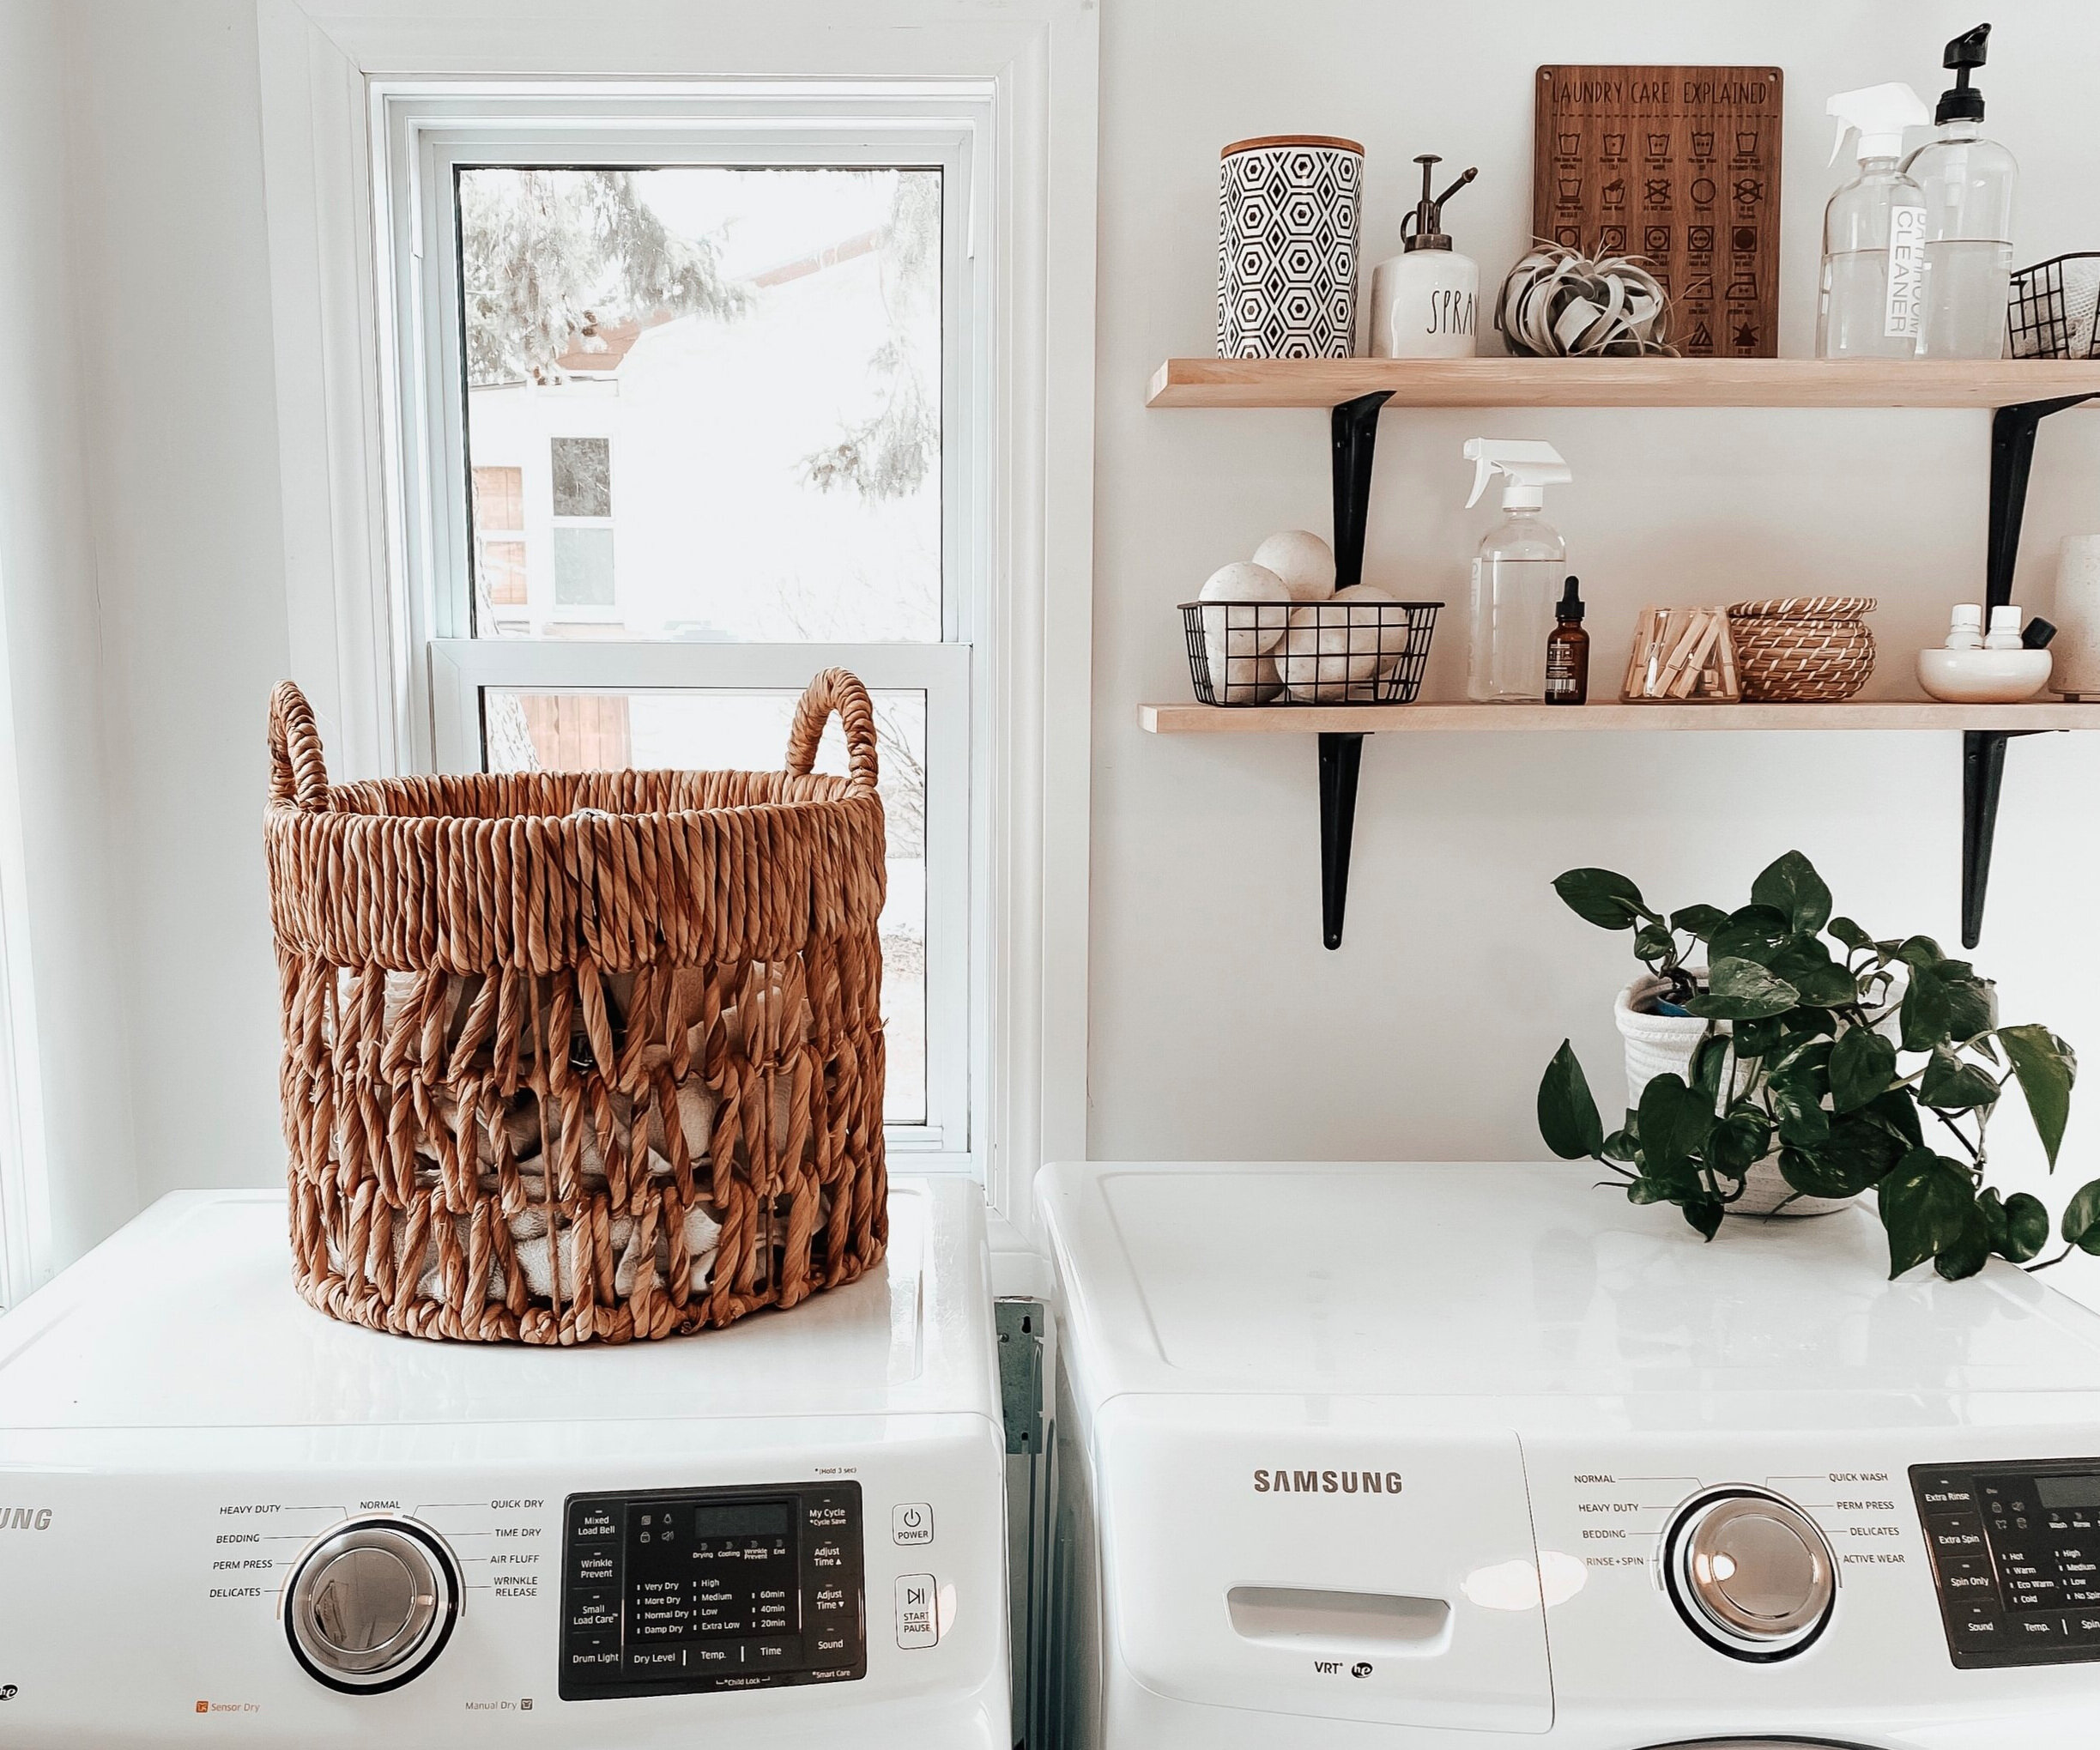 Shelf Decor 5 Things To Include In Your Laundry Room Design On Her Mind